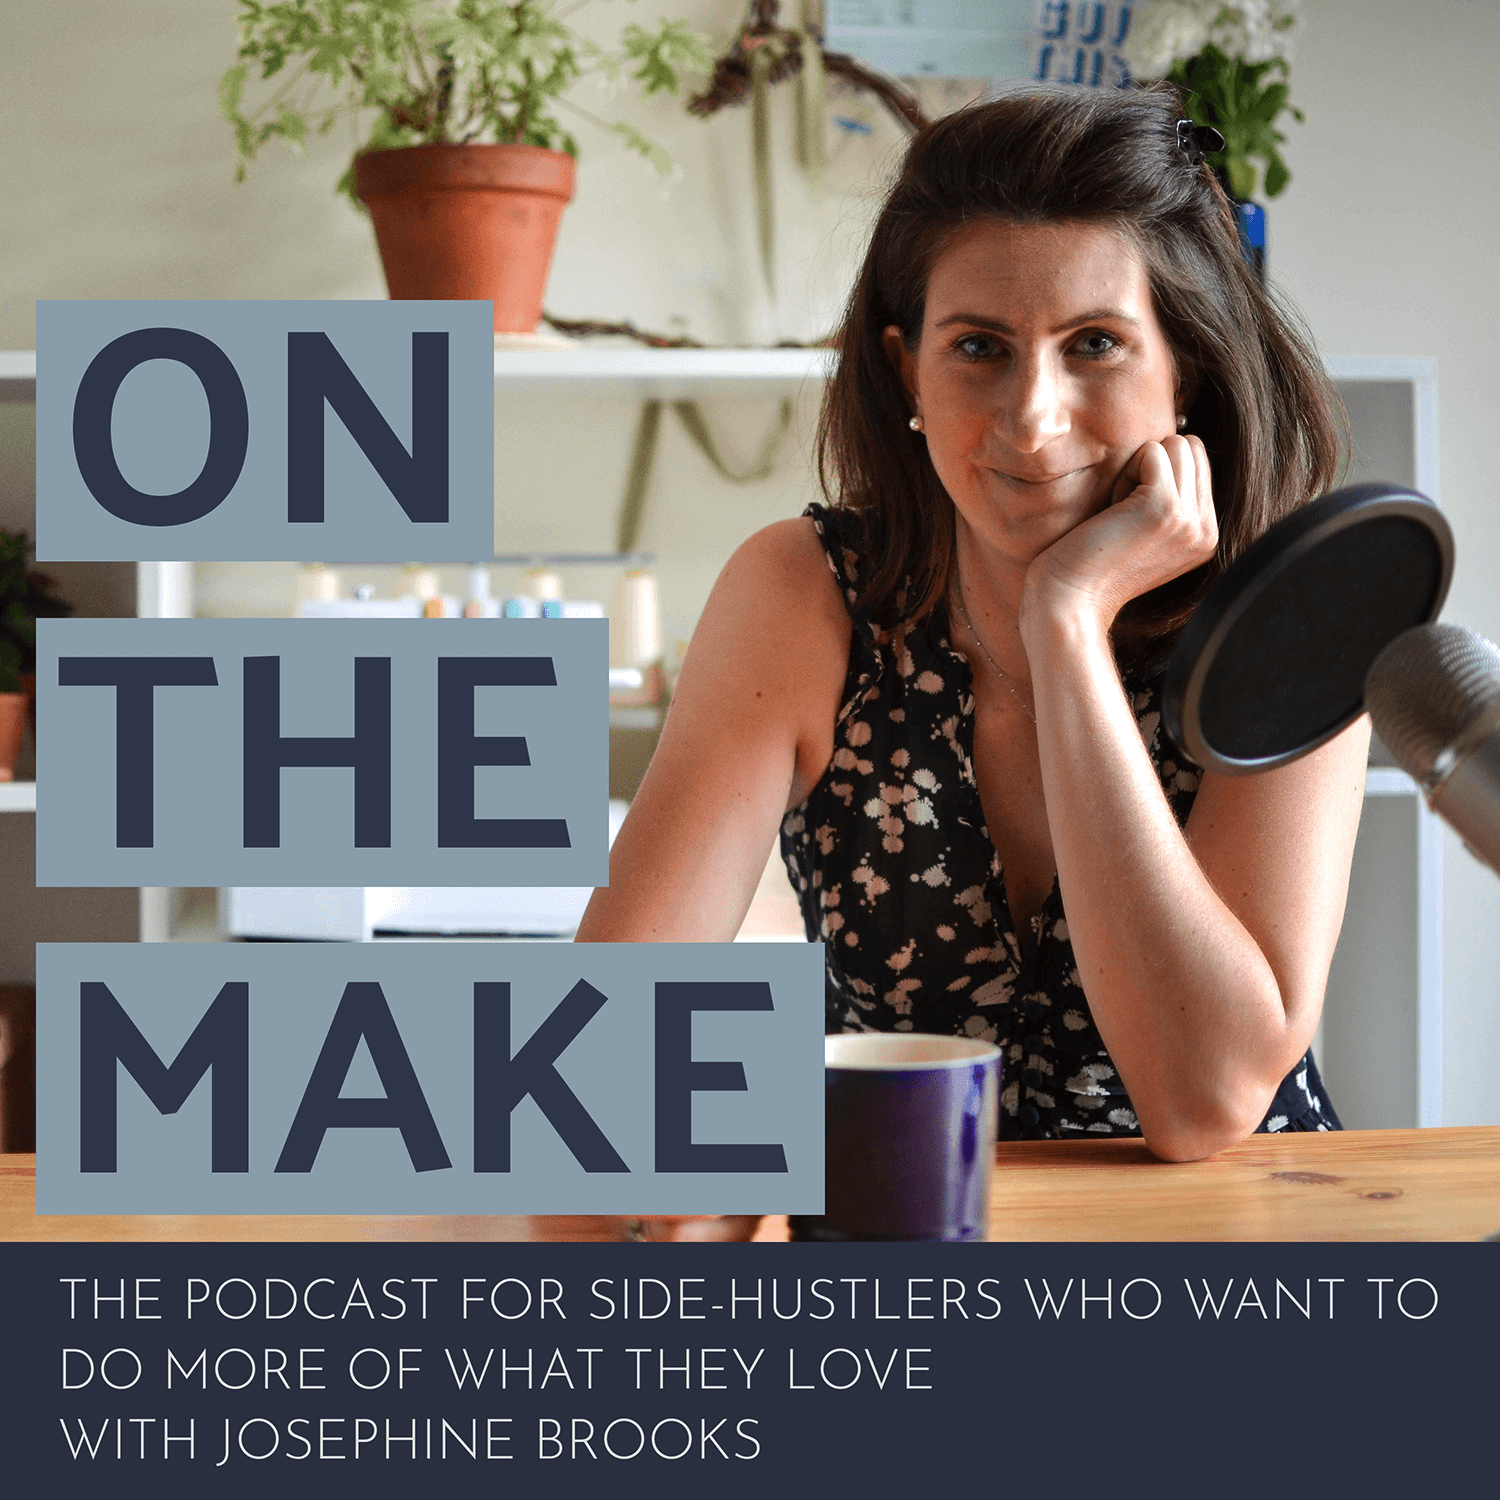 On_The_Make_podcast_with_Josephine_Brooks_-_Cover.png